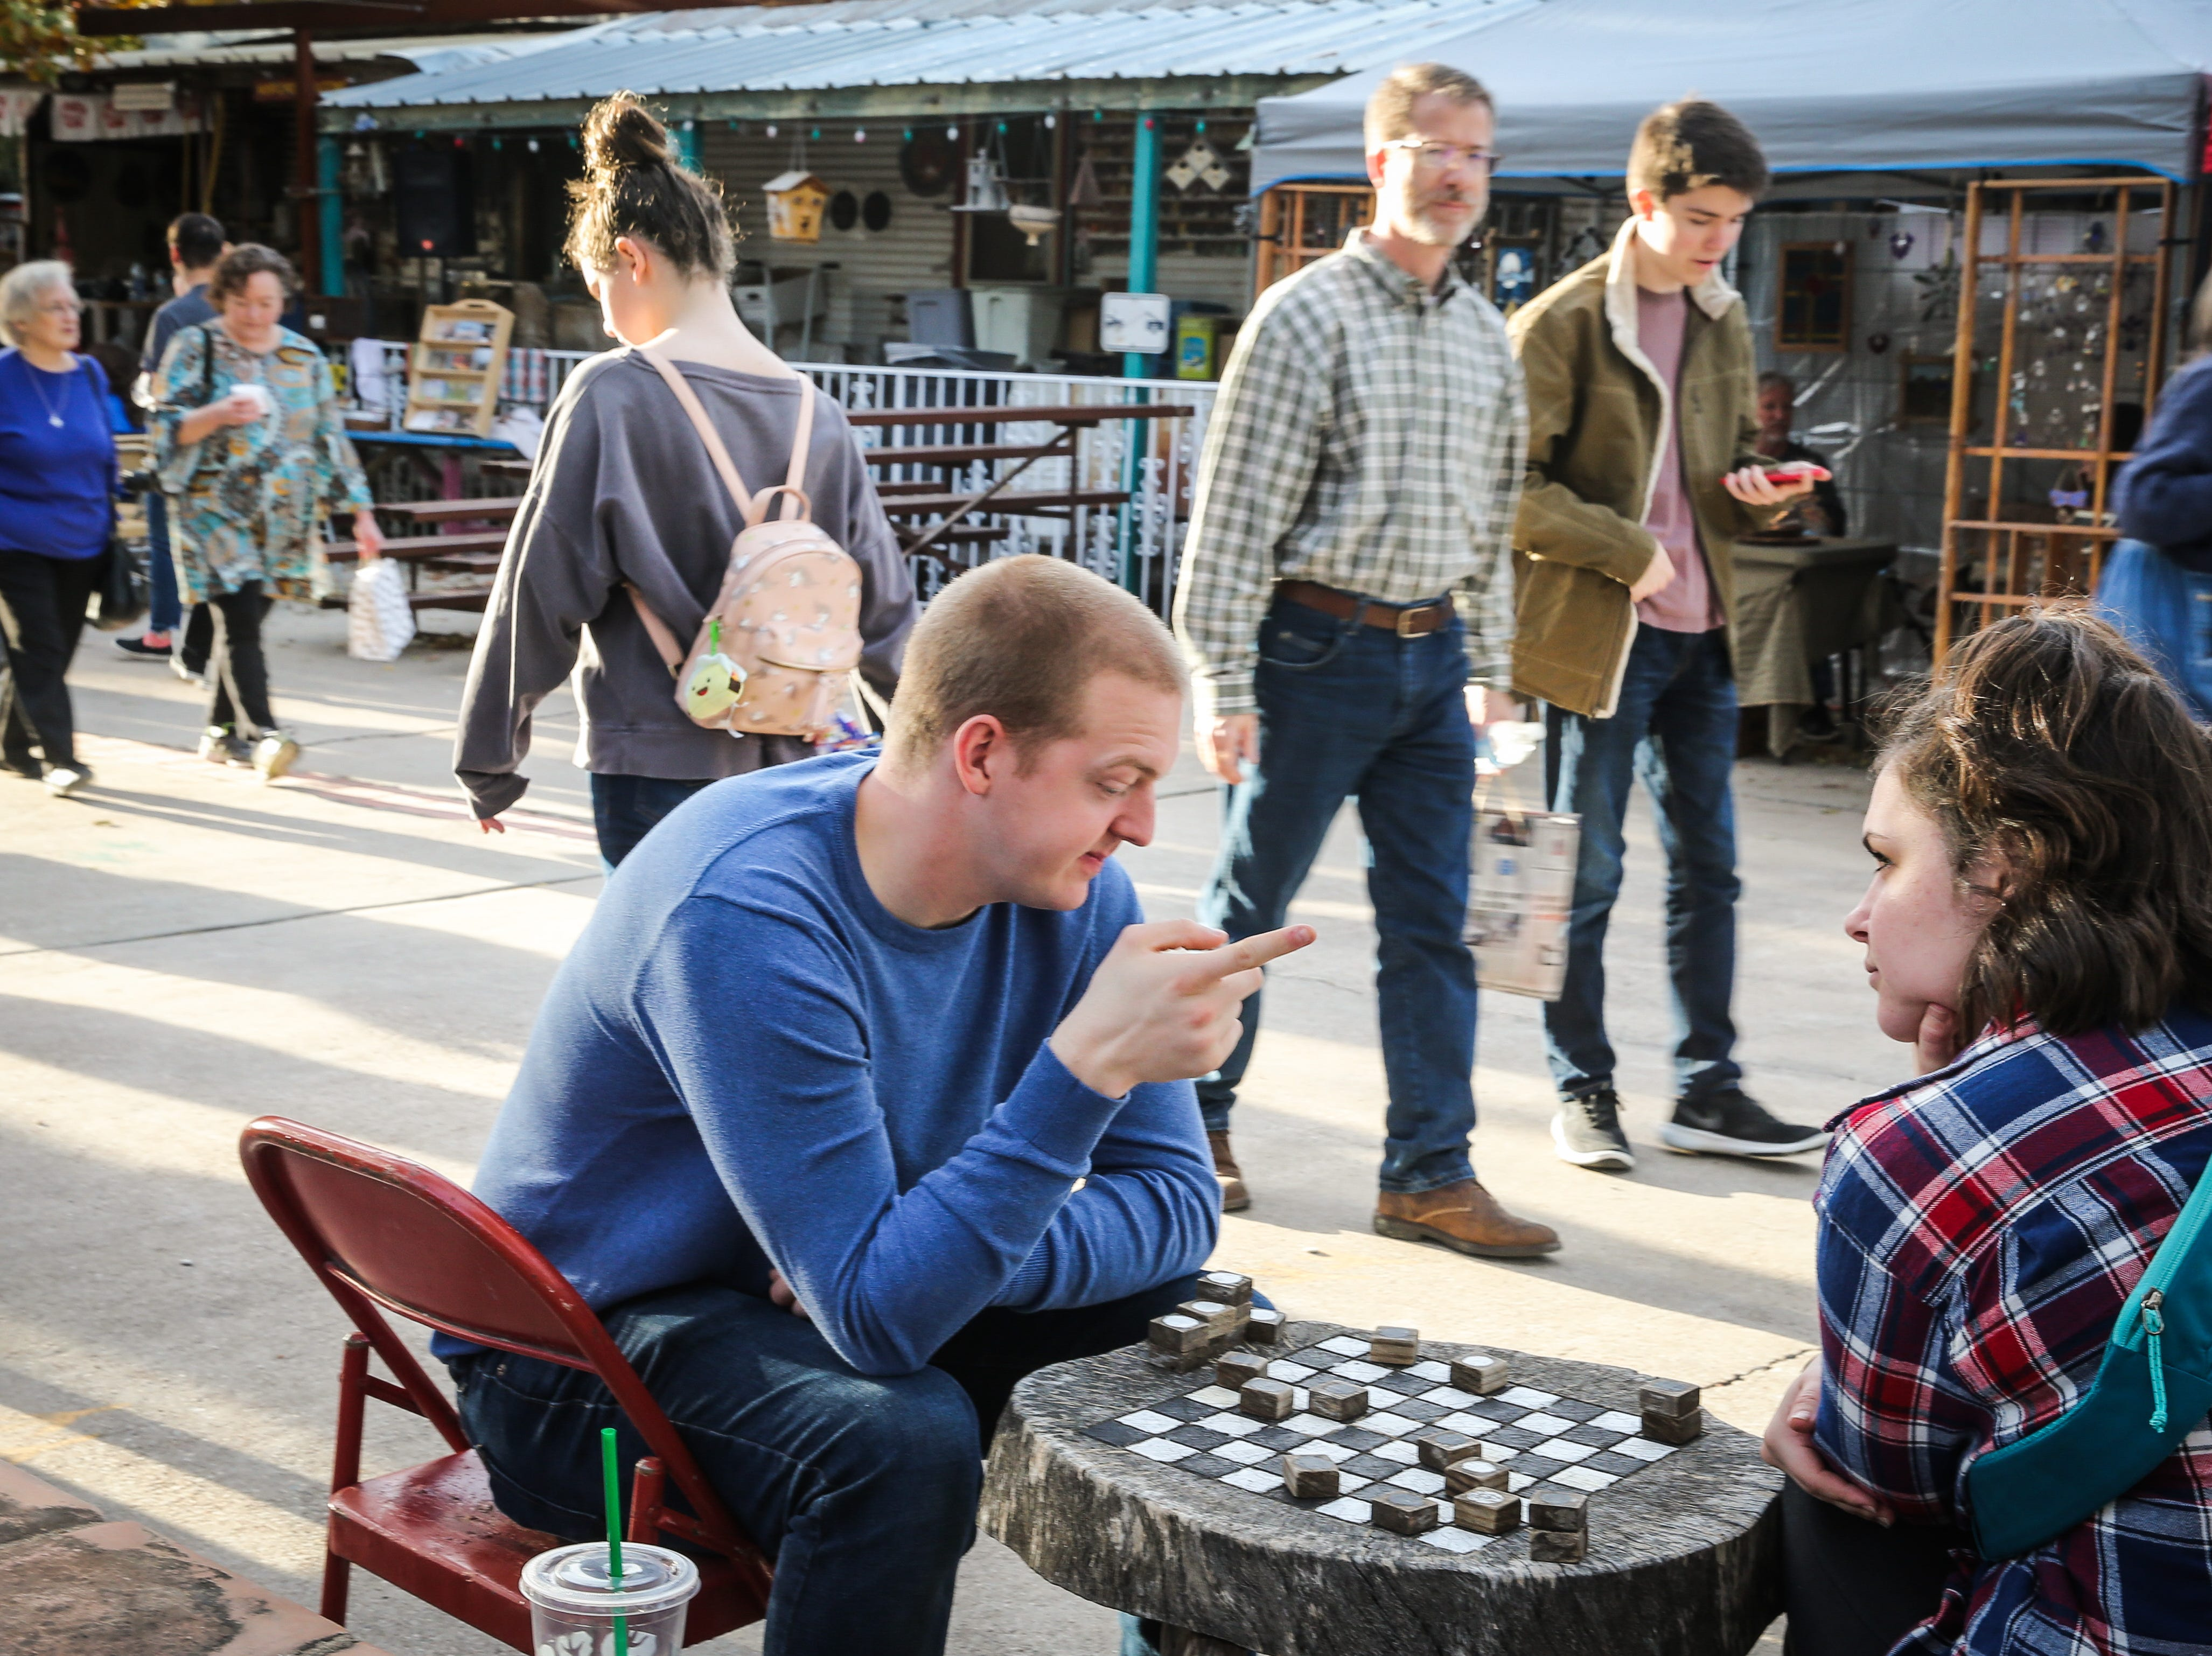 Adam Bailey and Kassidy Currence play checkers wile visitors walk around during the Thanksgiving Open House Friday, Nov. 23, 2018, at the Chicken Farm Art Center.